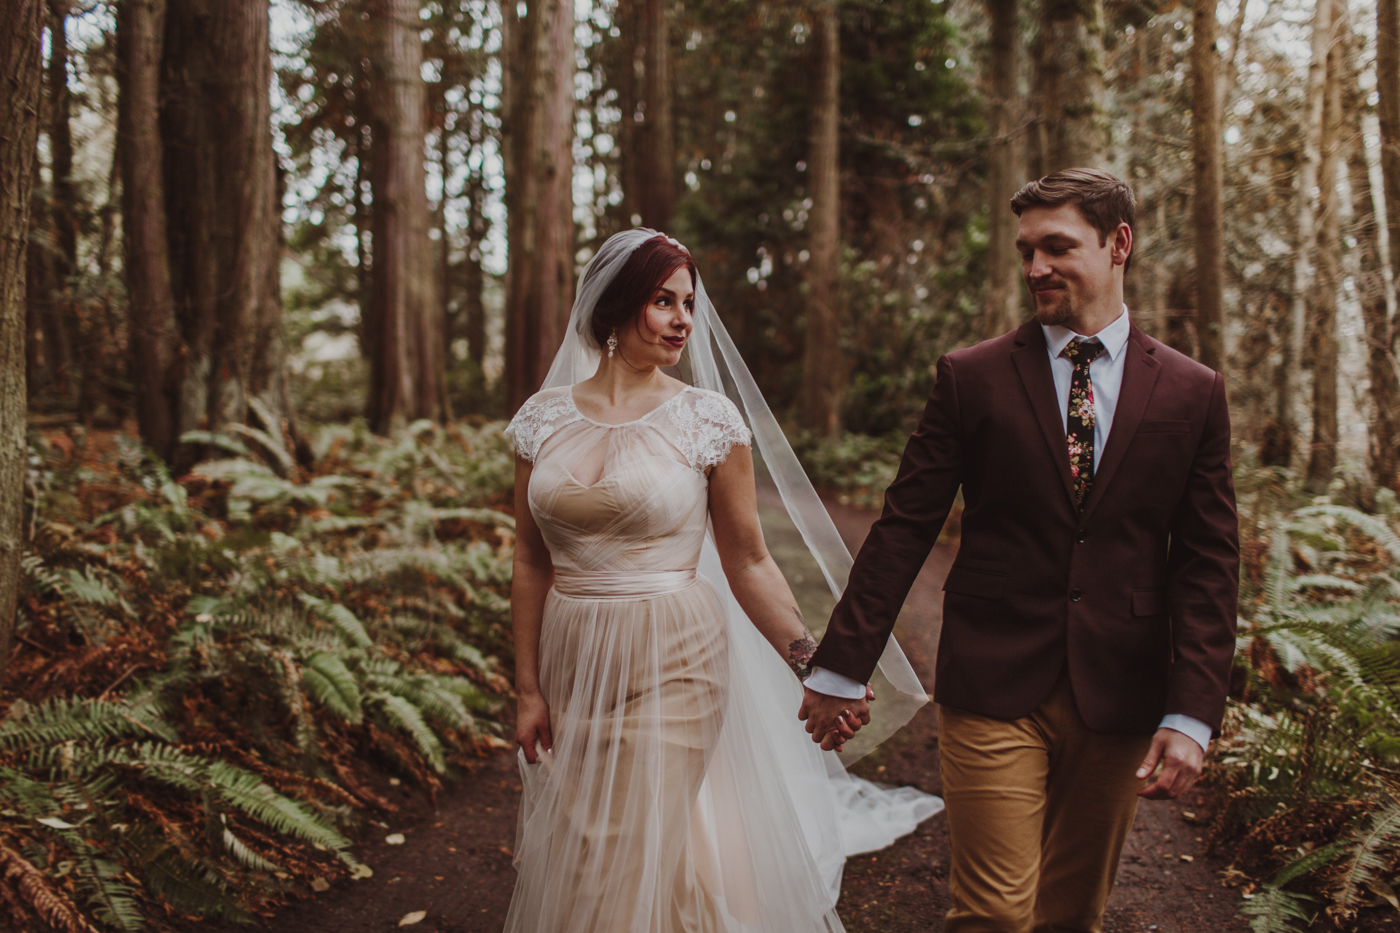 Olympic Peninsula Elopement-LizMorrow-41.jpg